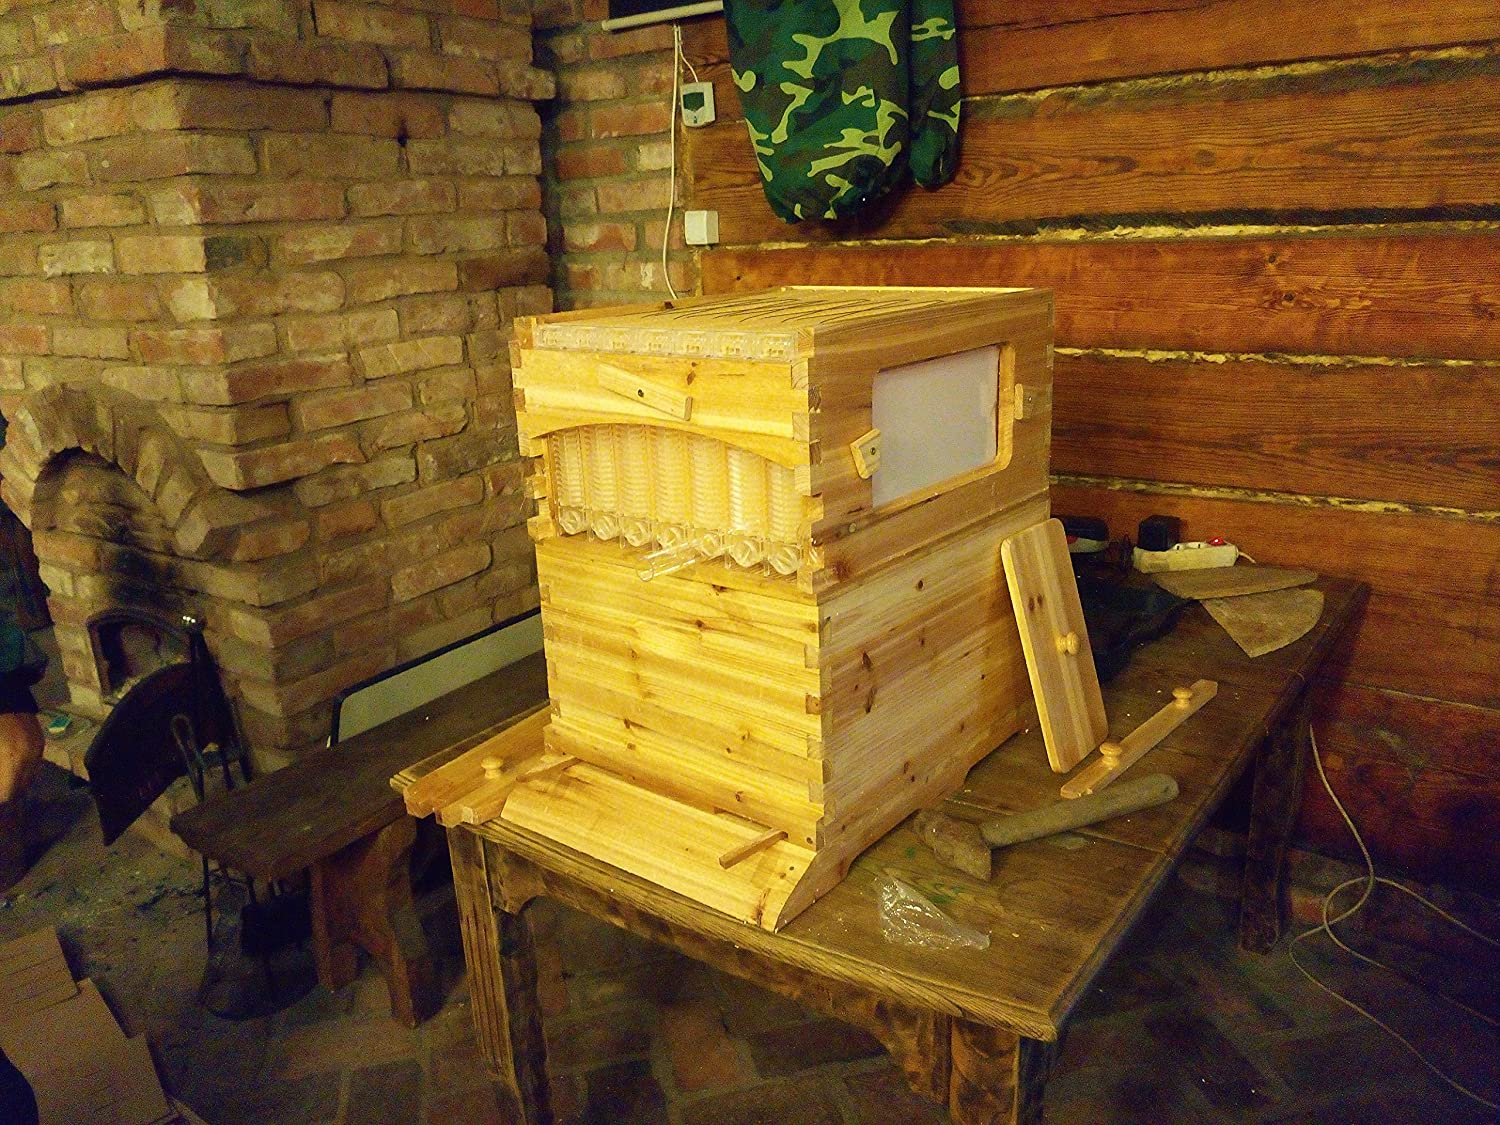 flow hive france good the flow beehive harvests honey without opening hive with flow hive. Black Bedroom Furniture Sets. Home Design Ideas